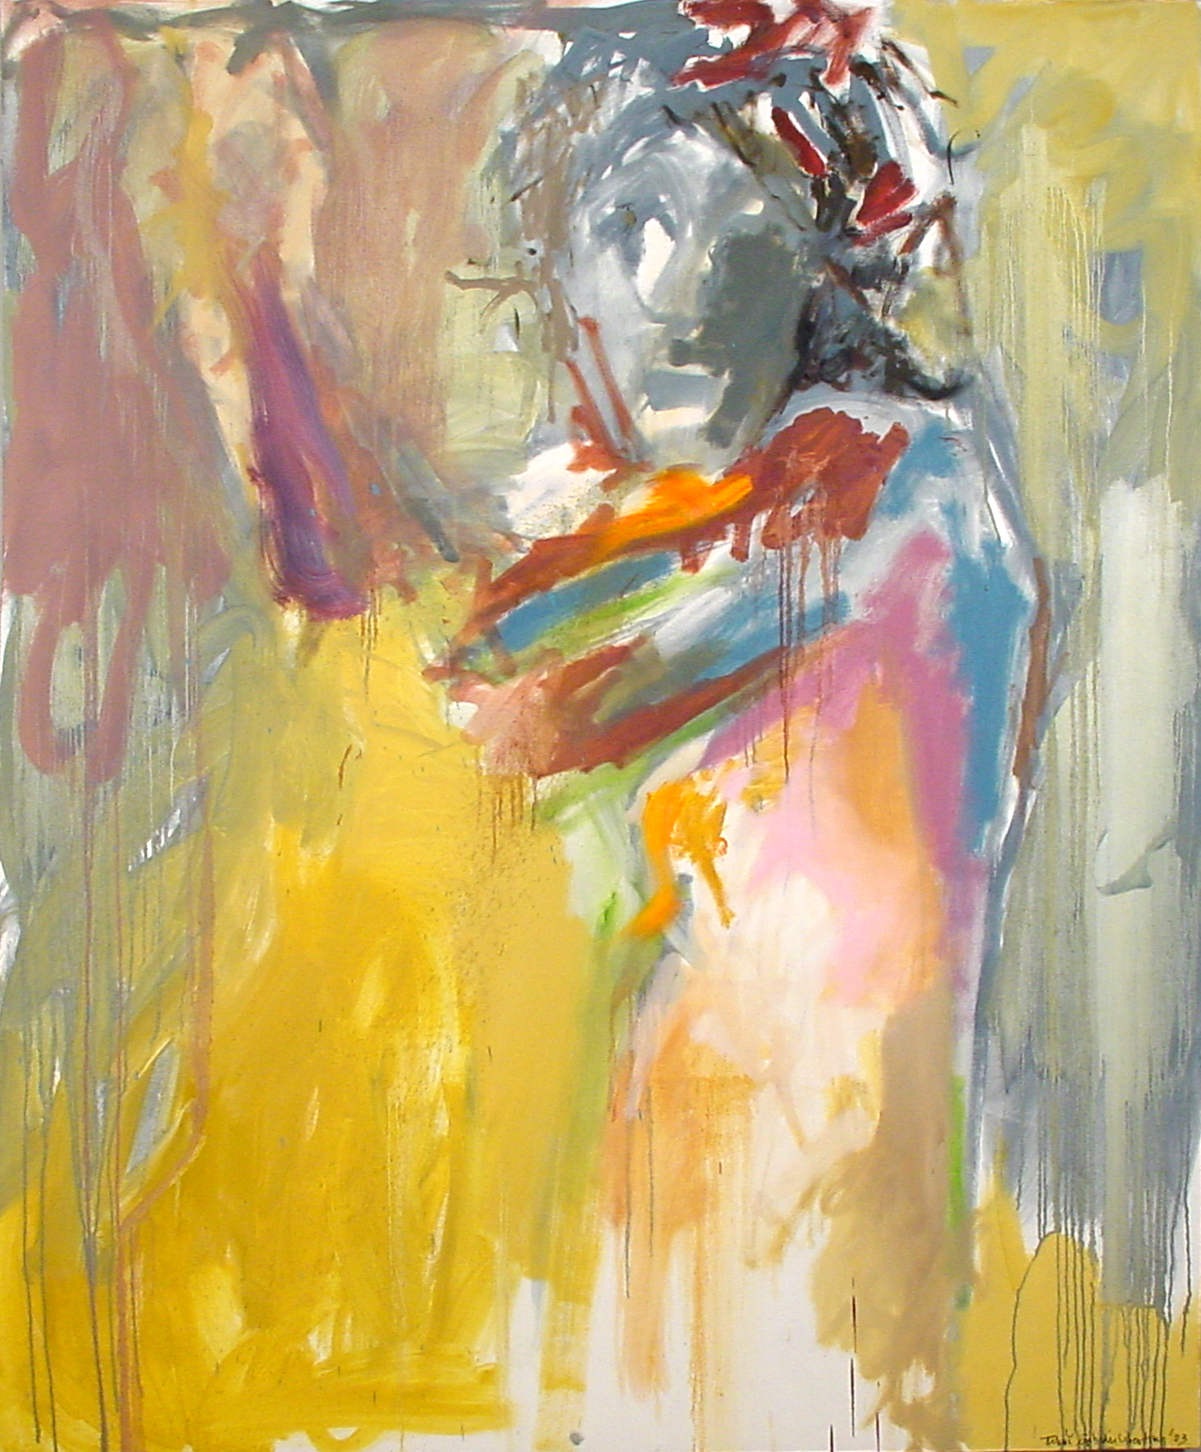 Alexander / 2012 / Private Collection Oil on canvas